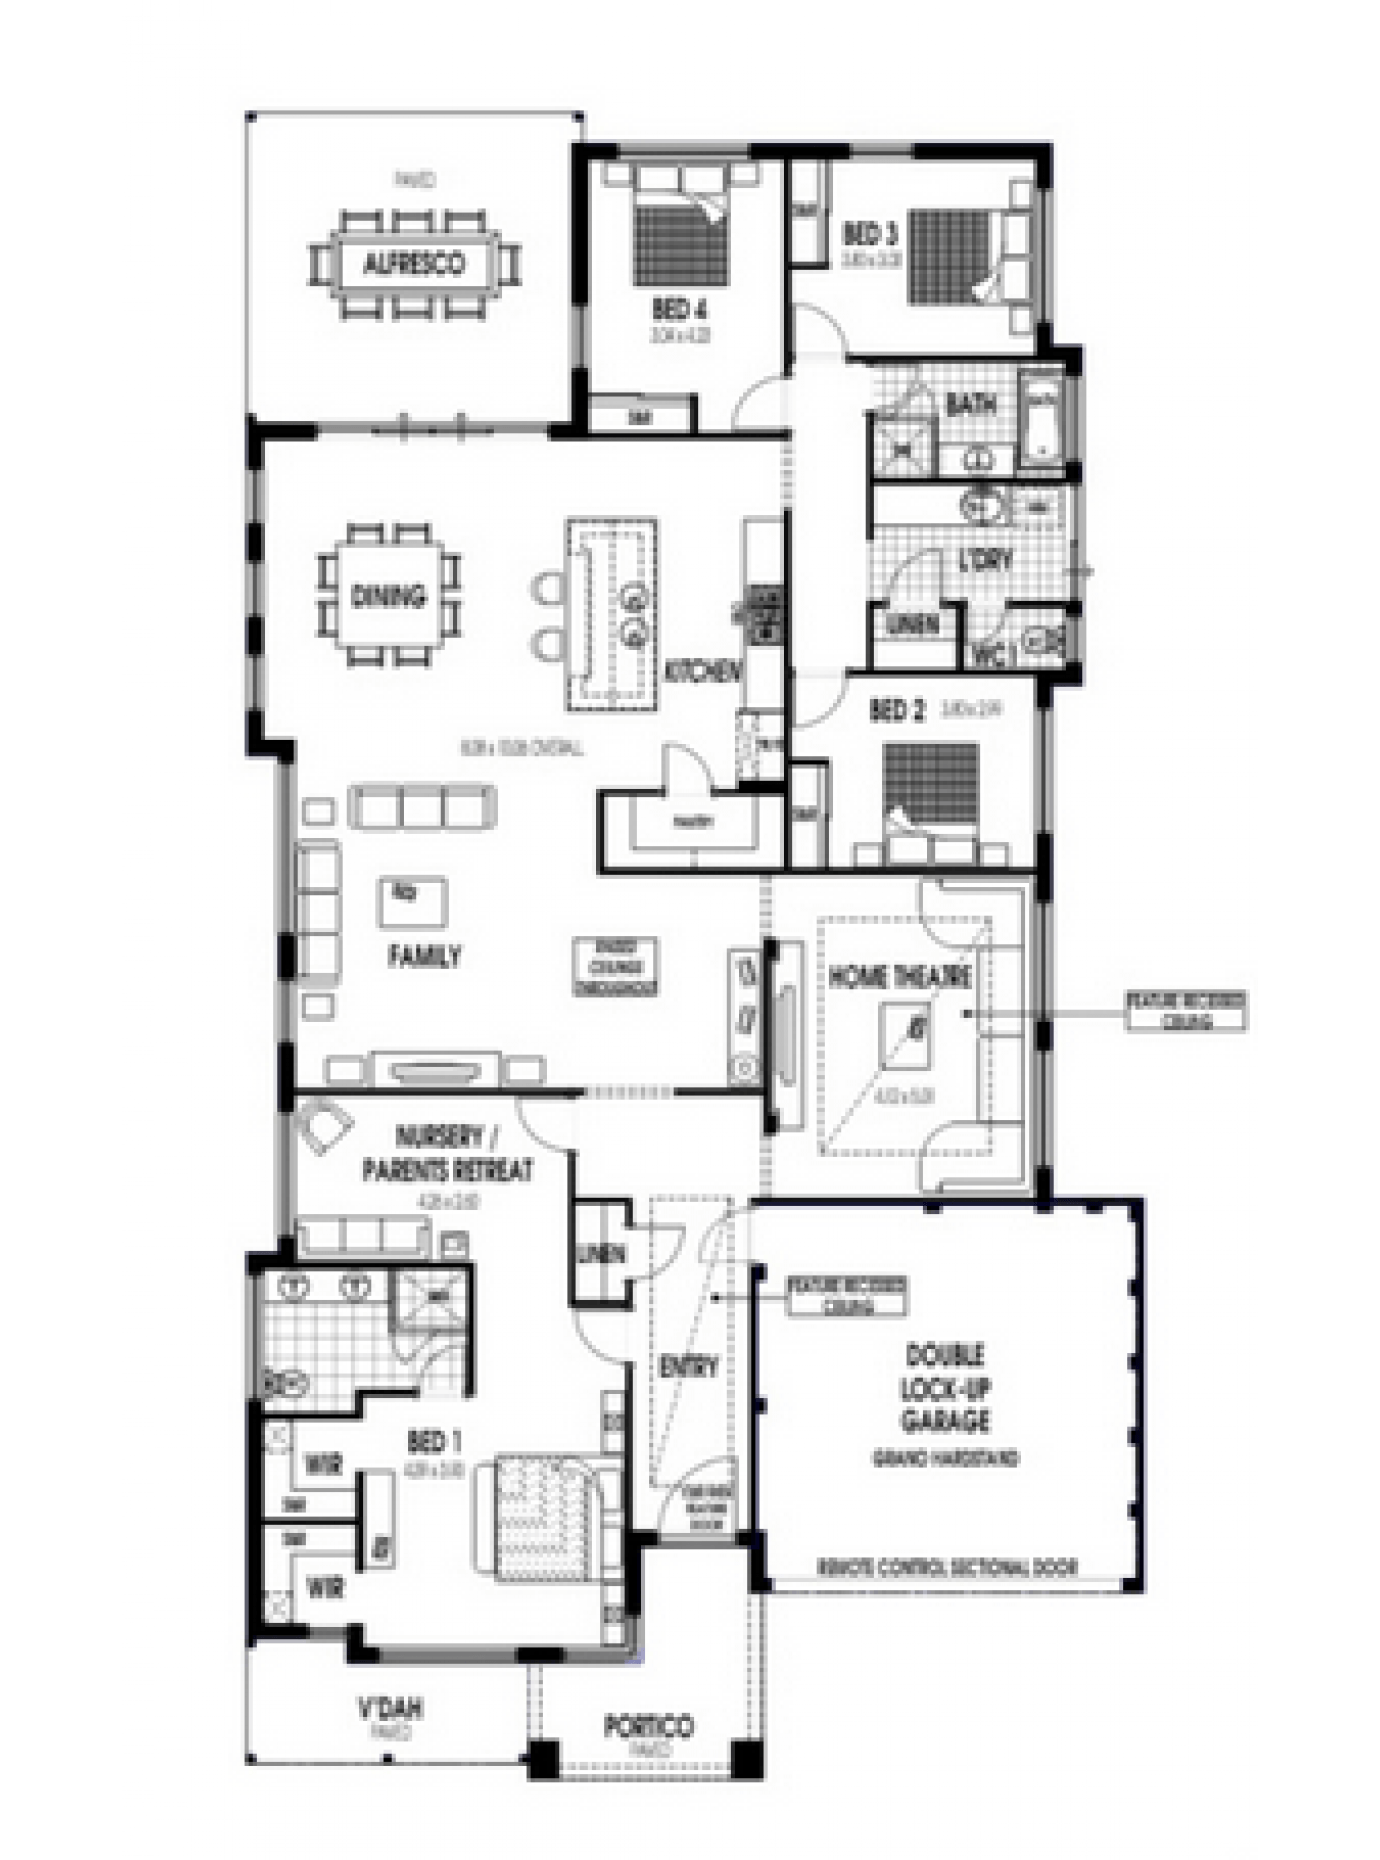 the santana display home by content living newhousing com au the santana by content living find all of perth display homes villages builders on one easy site search builders displays floor plans by images or on